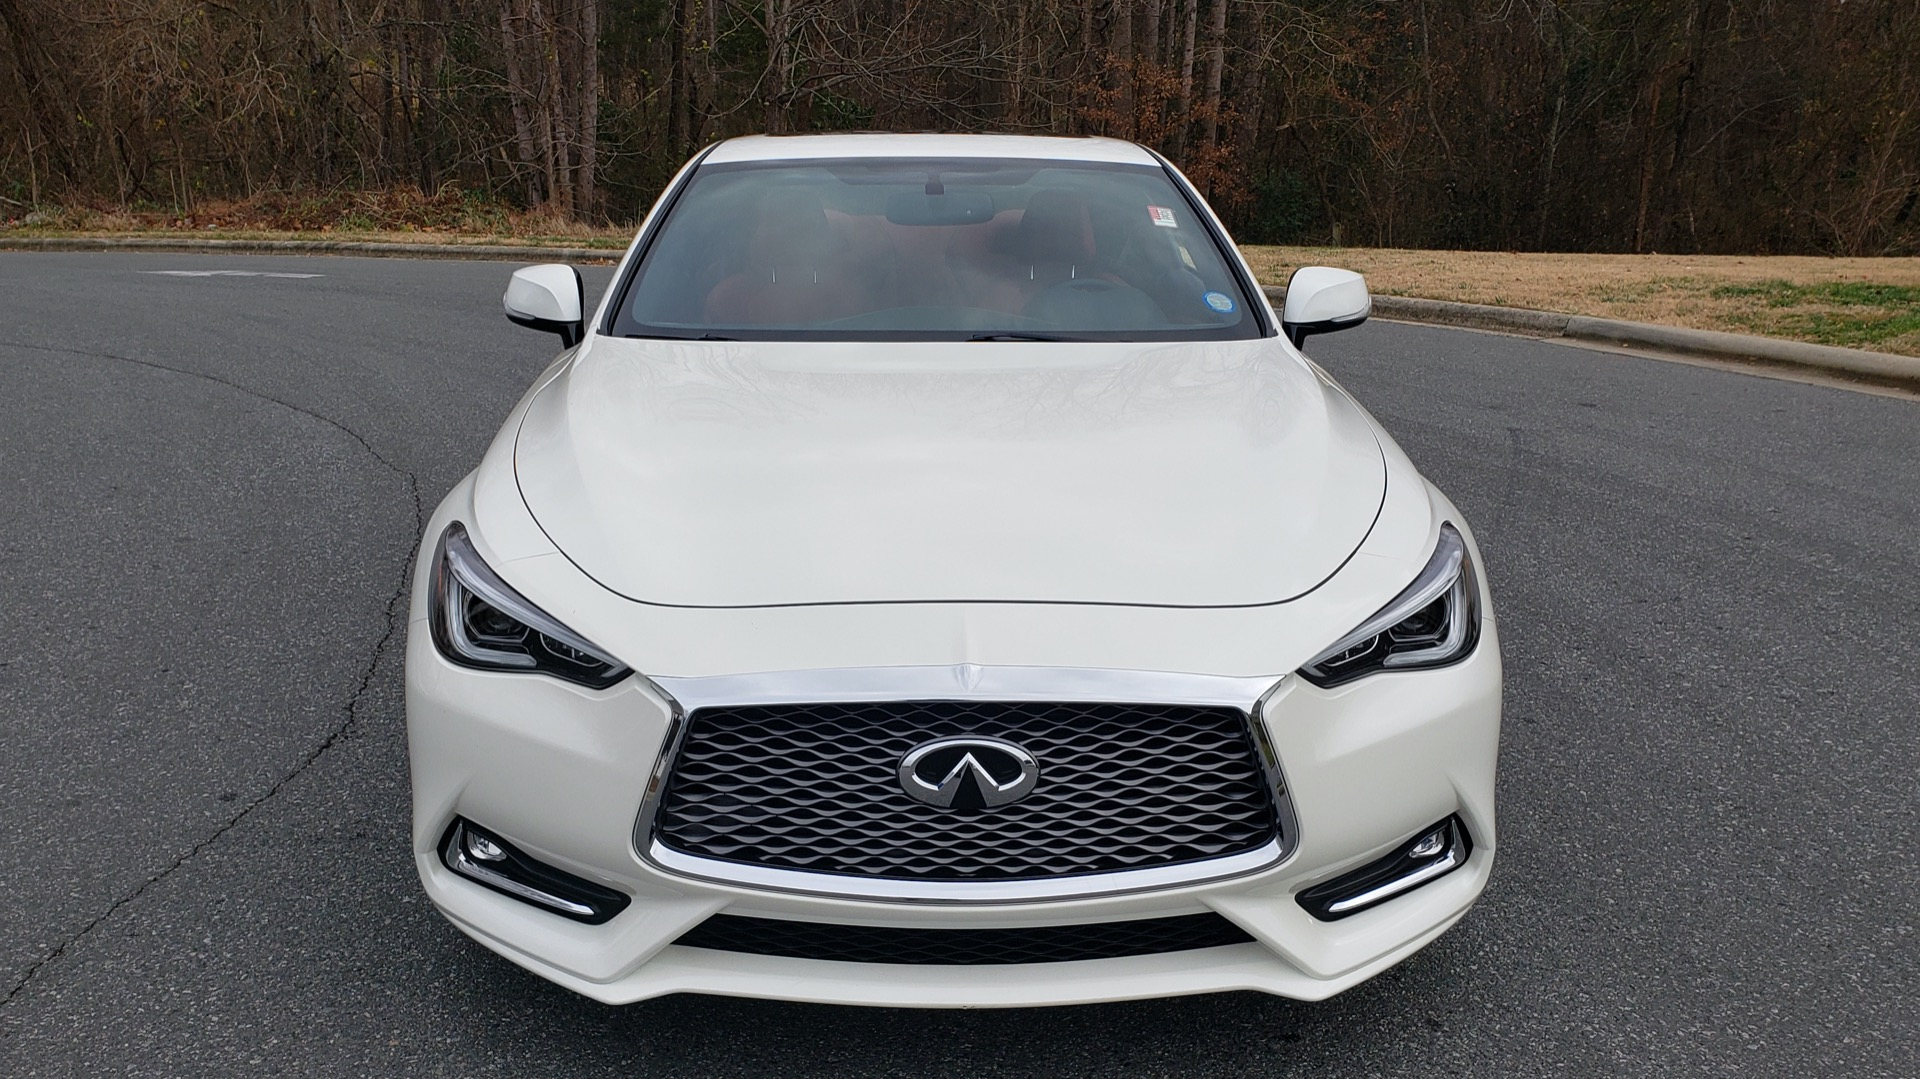 Used 2018 Infiniti Q60 RED SPORT 400 / SENSORY PKG / SUNROOF / NAV / REARVIEW for sale Sold at Formula Imports in Charlotte NC 28227 22